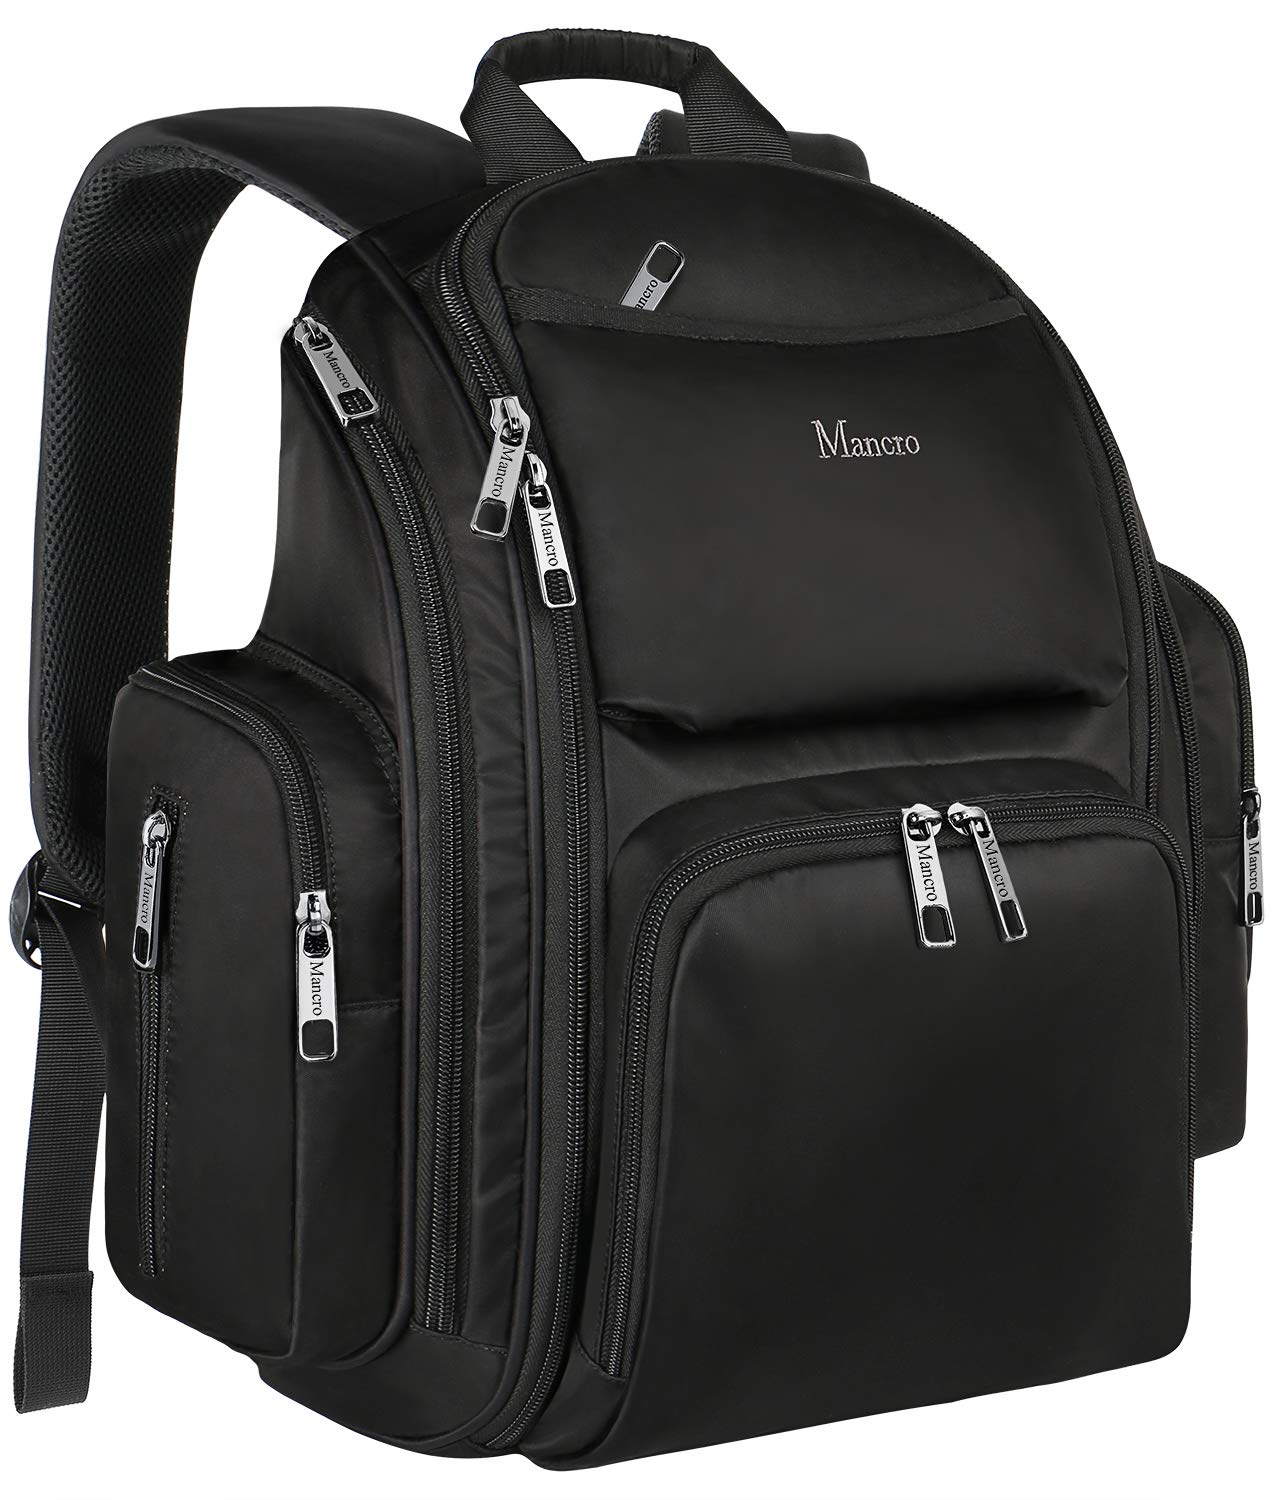 0dc772c16f39 Backpack Diaper Bag, Waterproof Baby Travel Bag for Dad and Men, Large  Multi-Function, Many Pockets,...